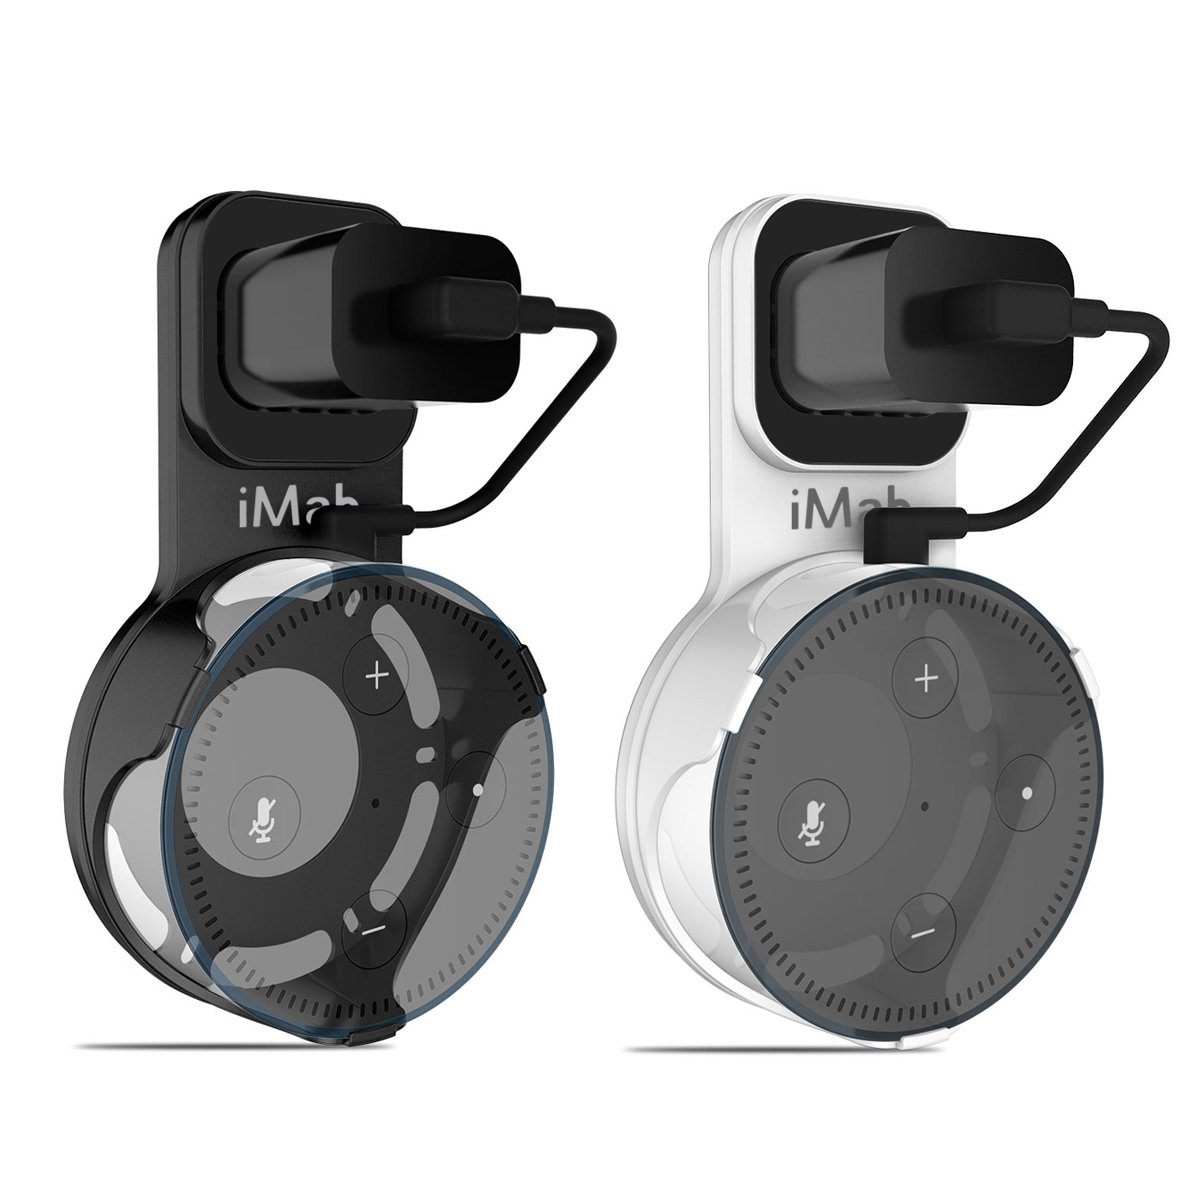 iMah Echo Dot Wall Mount with Short Charging Cable for Echo Dot 2nd Generation, Wall Mount Holder for Echo Dot 2nd & Other Round Voice Assistants, Simple way to cleanly display (2-Pack, Black & White)